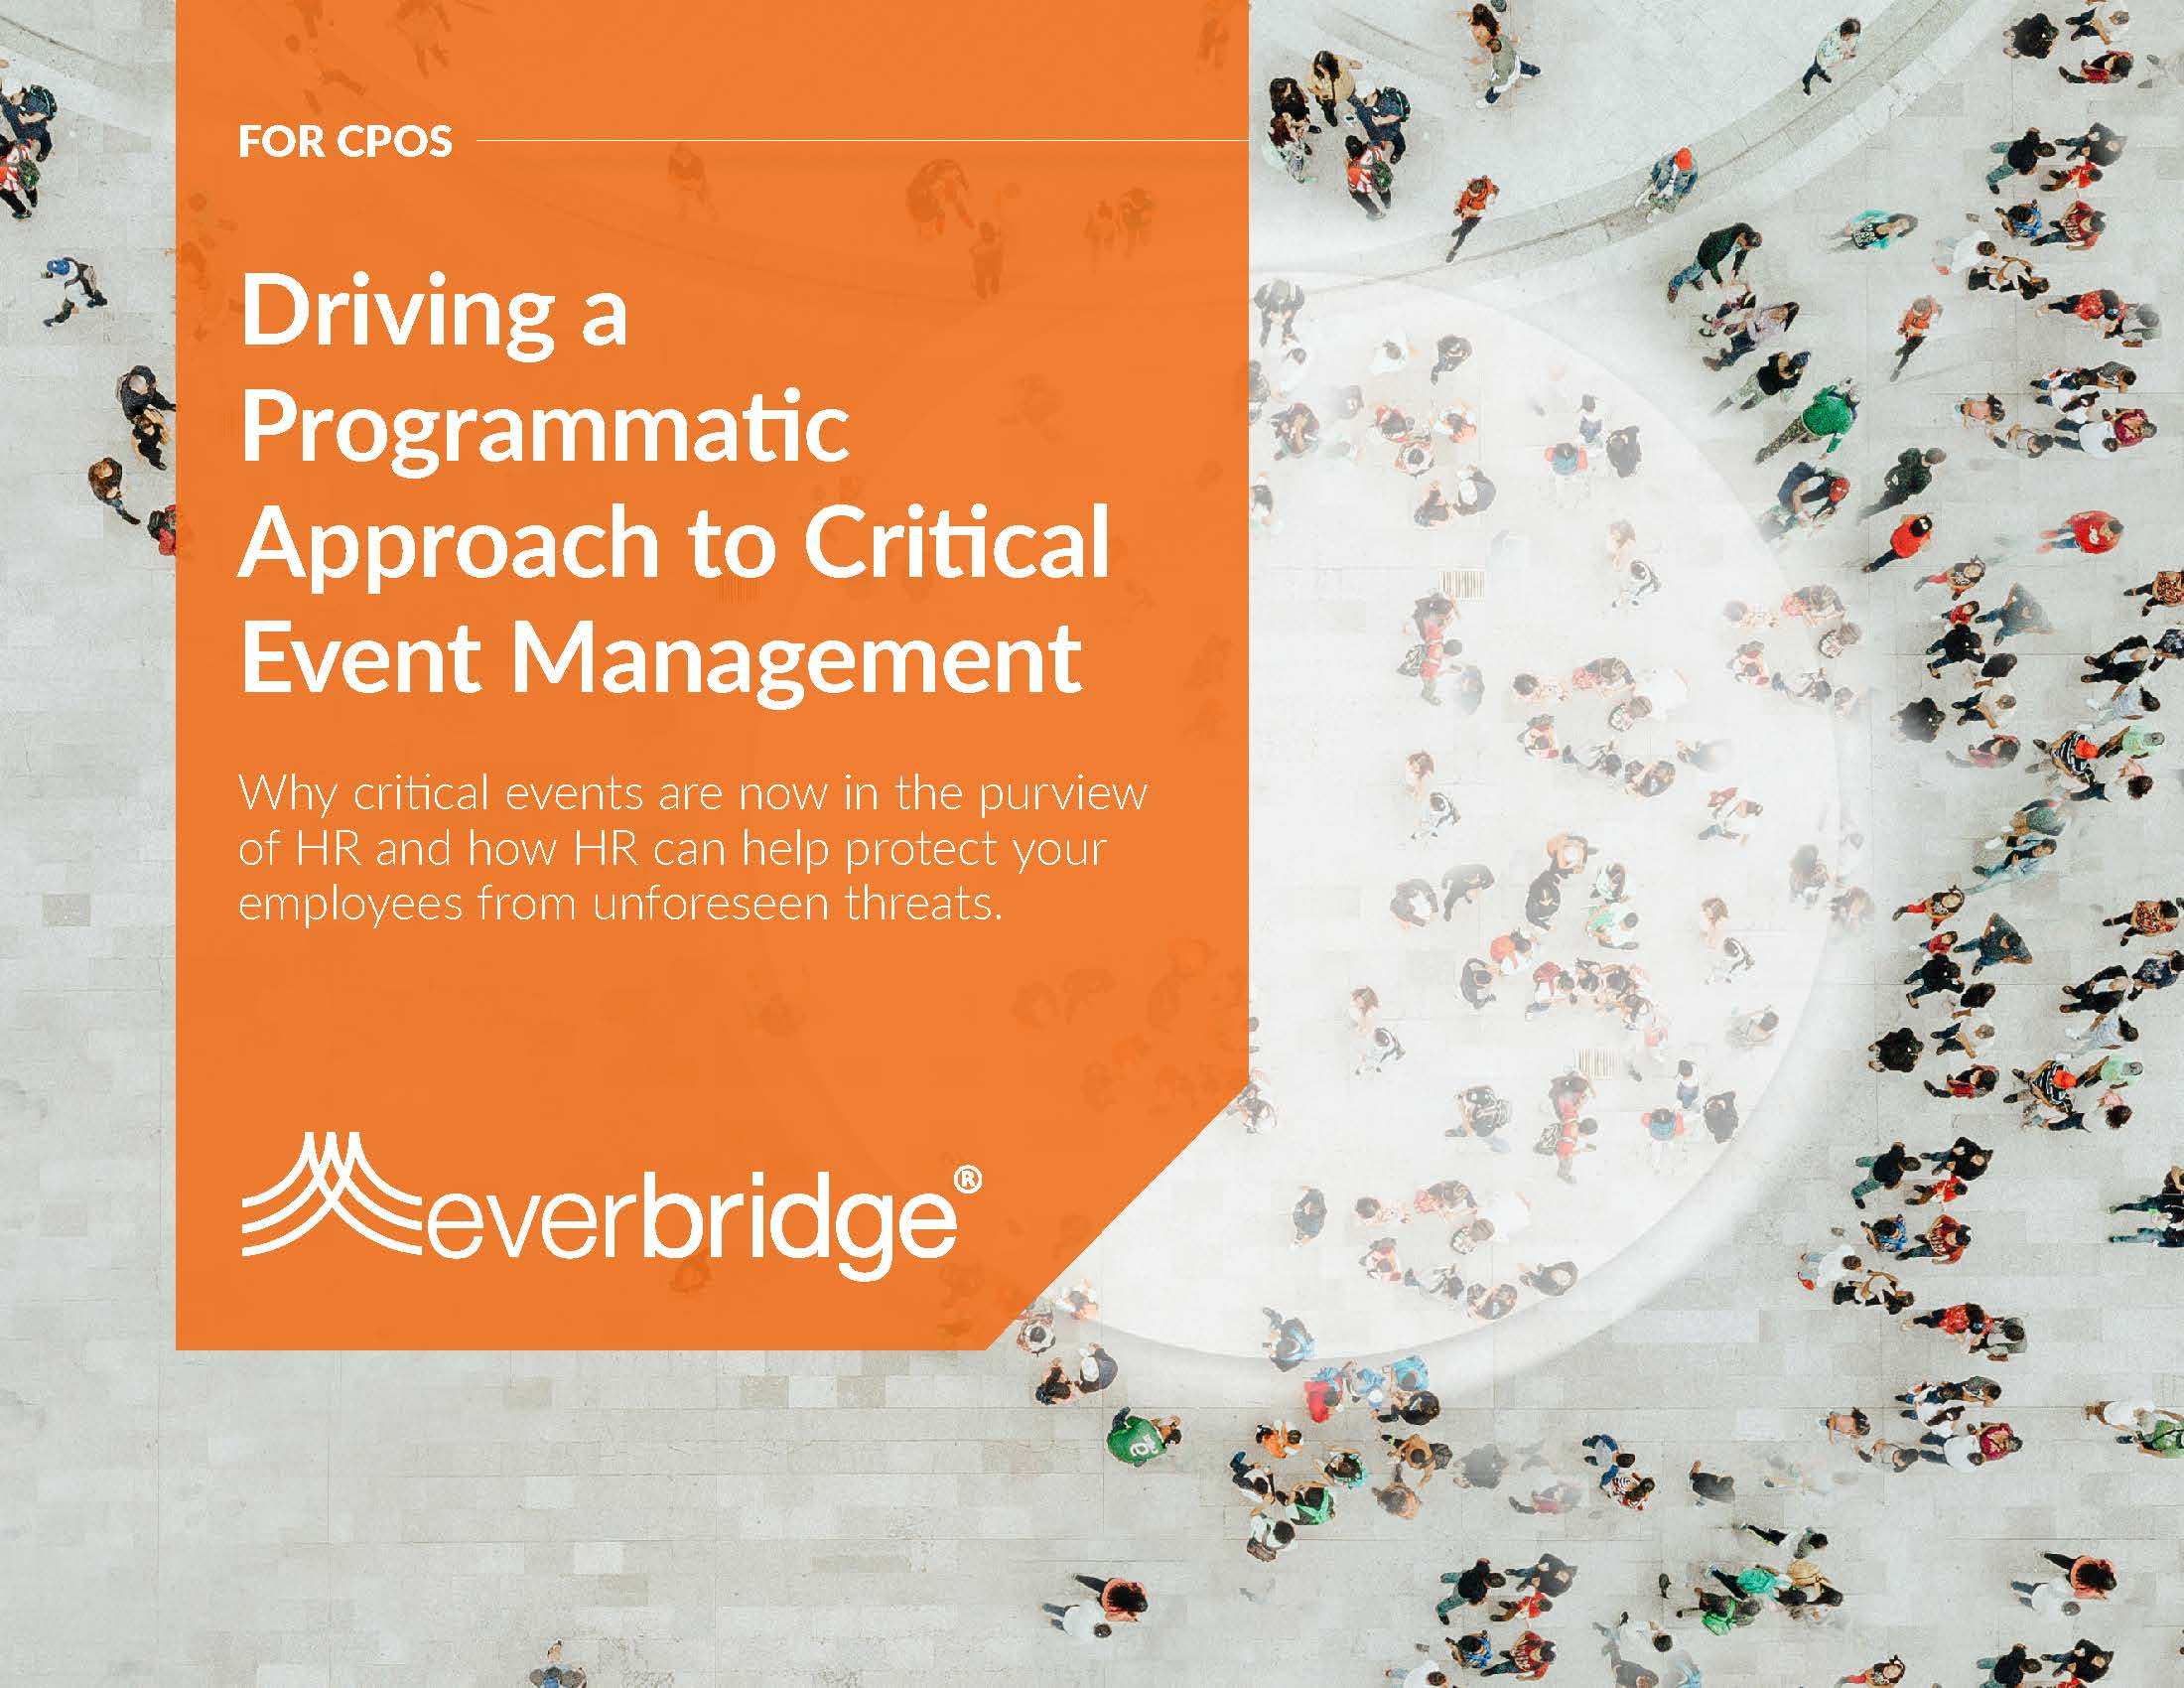 driving a programmatic approach to critical event management Chief people officer executive brief